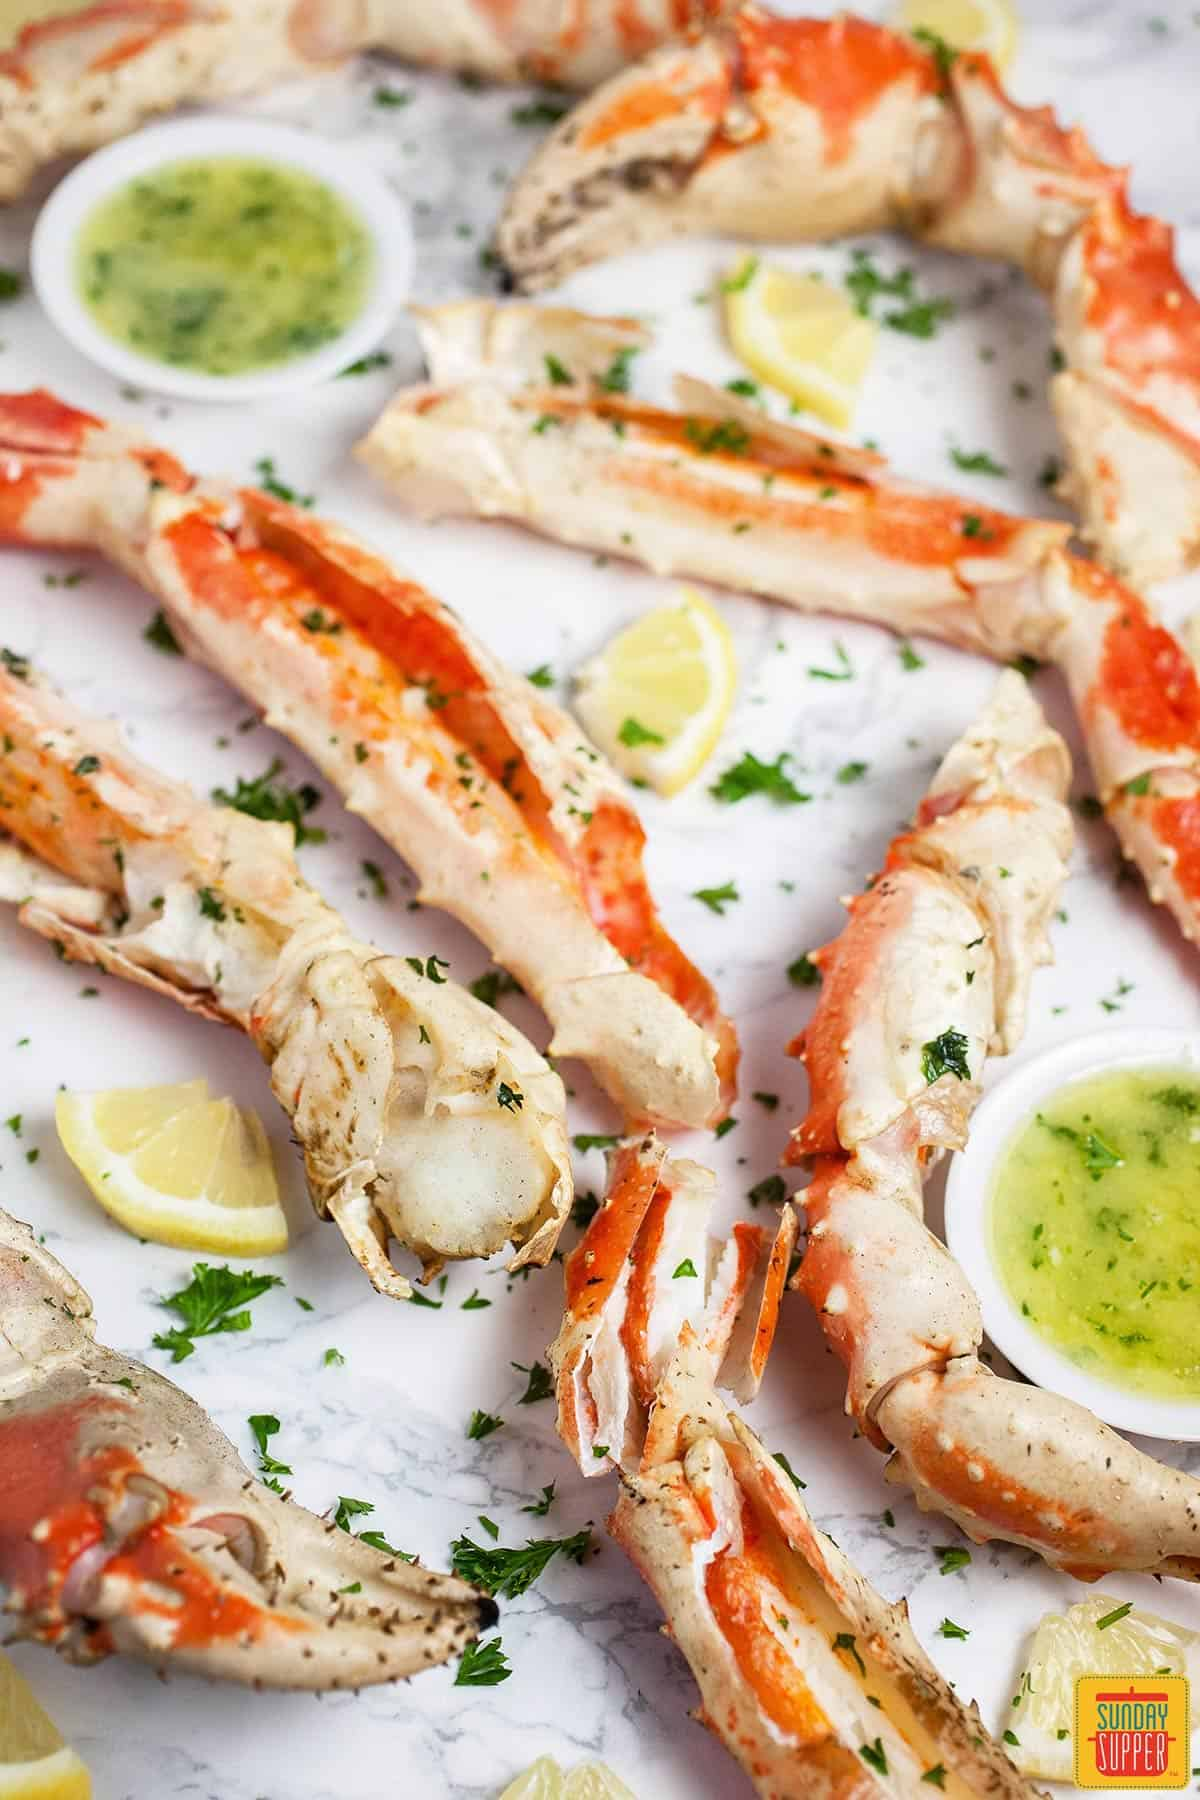 Grilled crab legs on a white surface with two cups of garlic butter sauce and fresh herbs sprinkled on